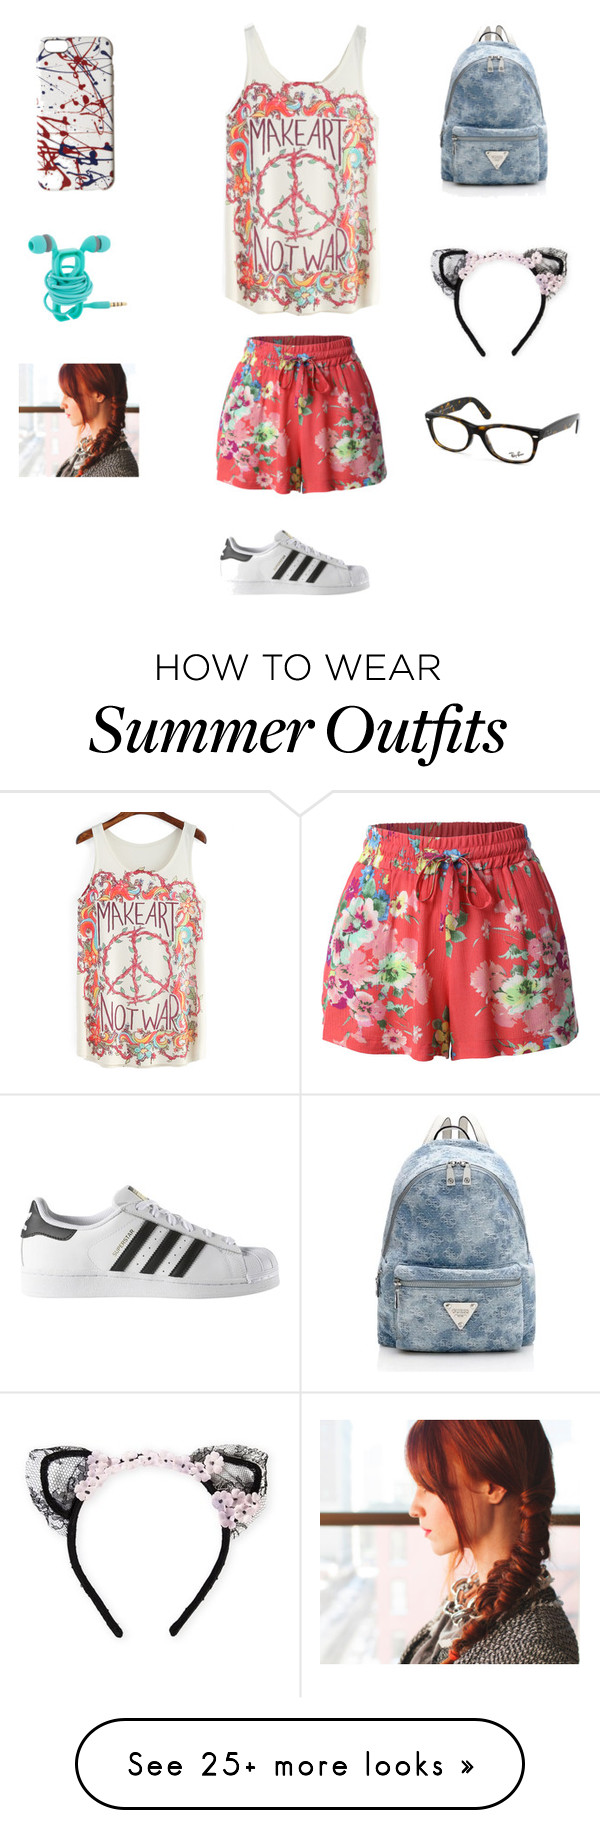 """Make art not war outfit"" by reaganlucas2003 on Polyvore featuring LE3NO, adidas, Marc Jacobs, MAISON MICHEL PARIS and Ray-Ban"